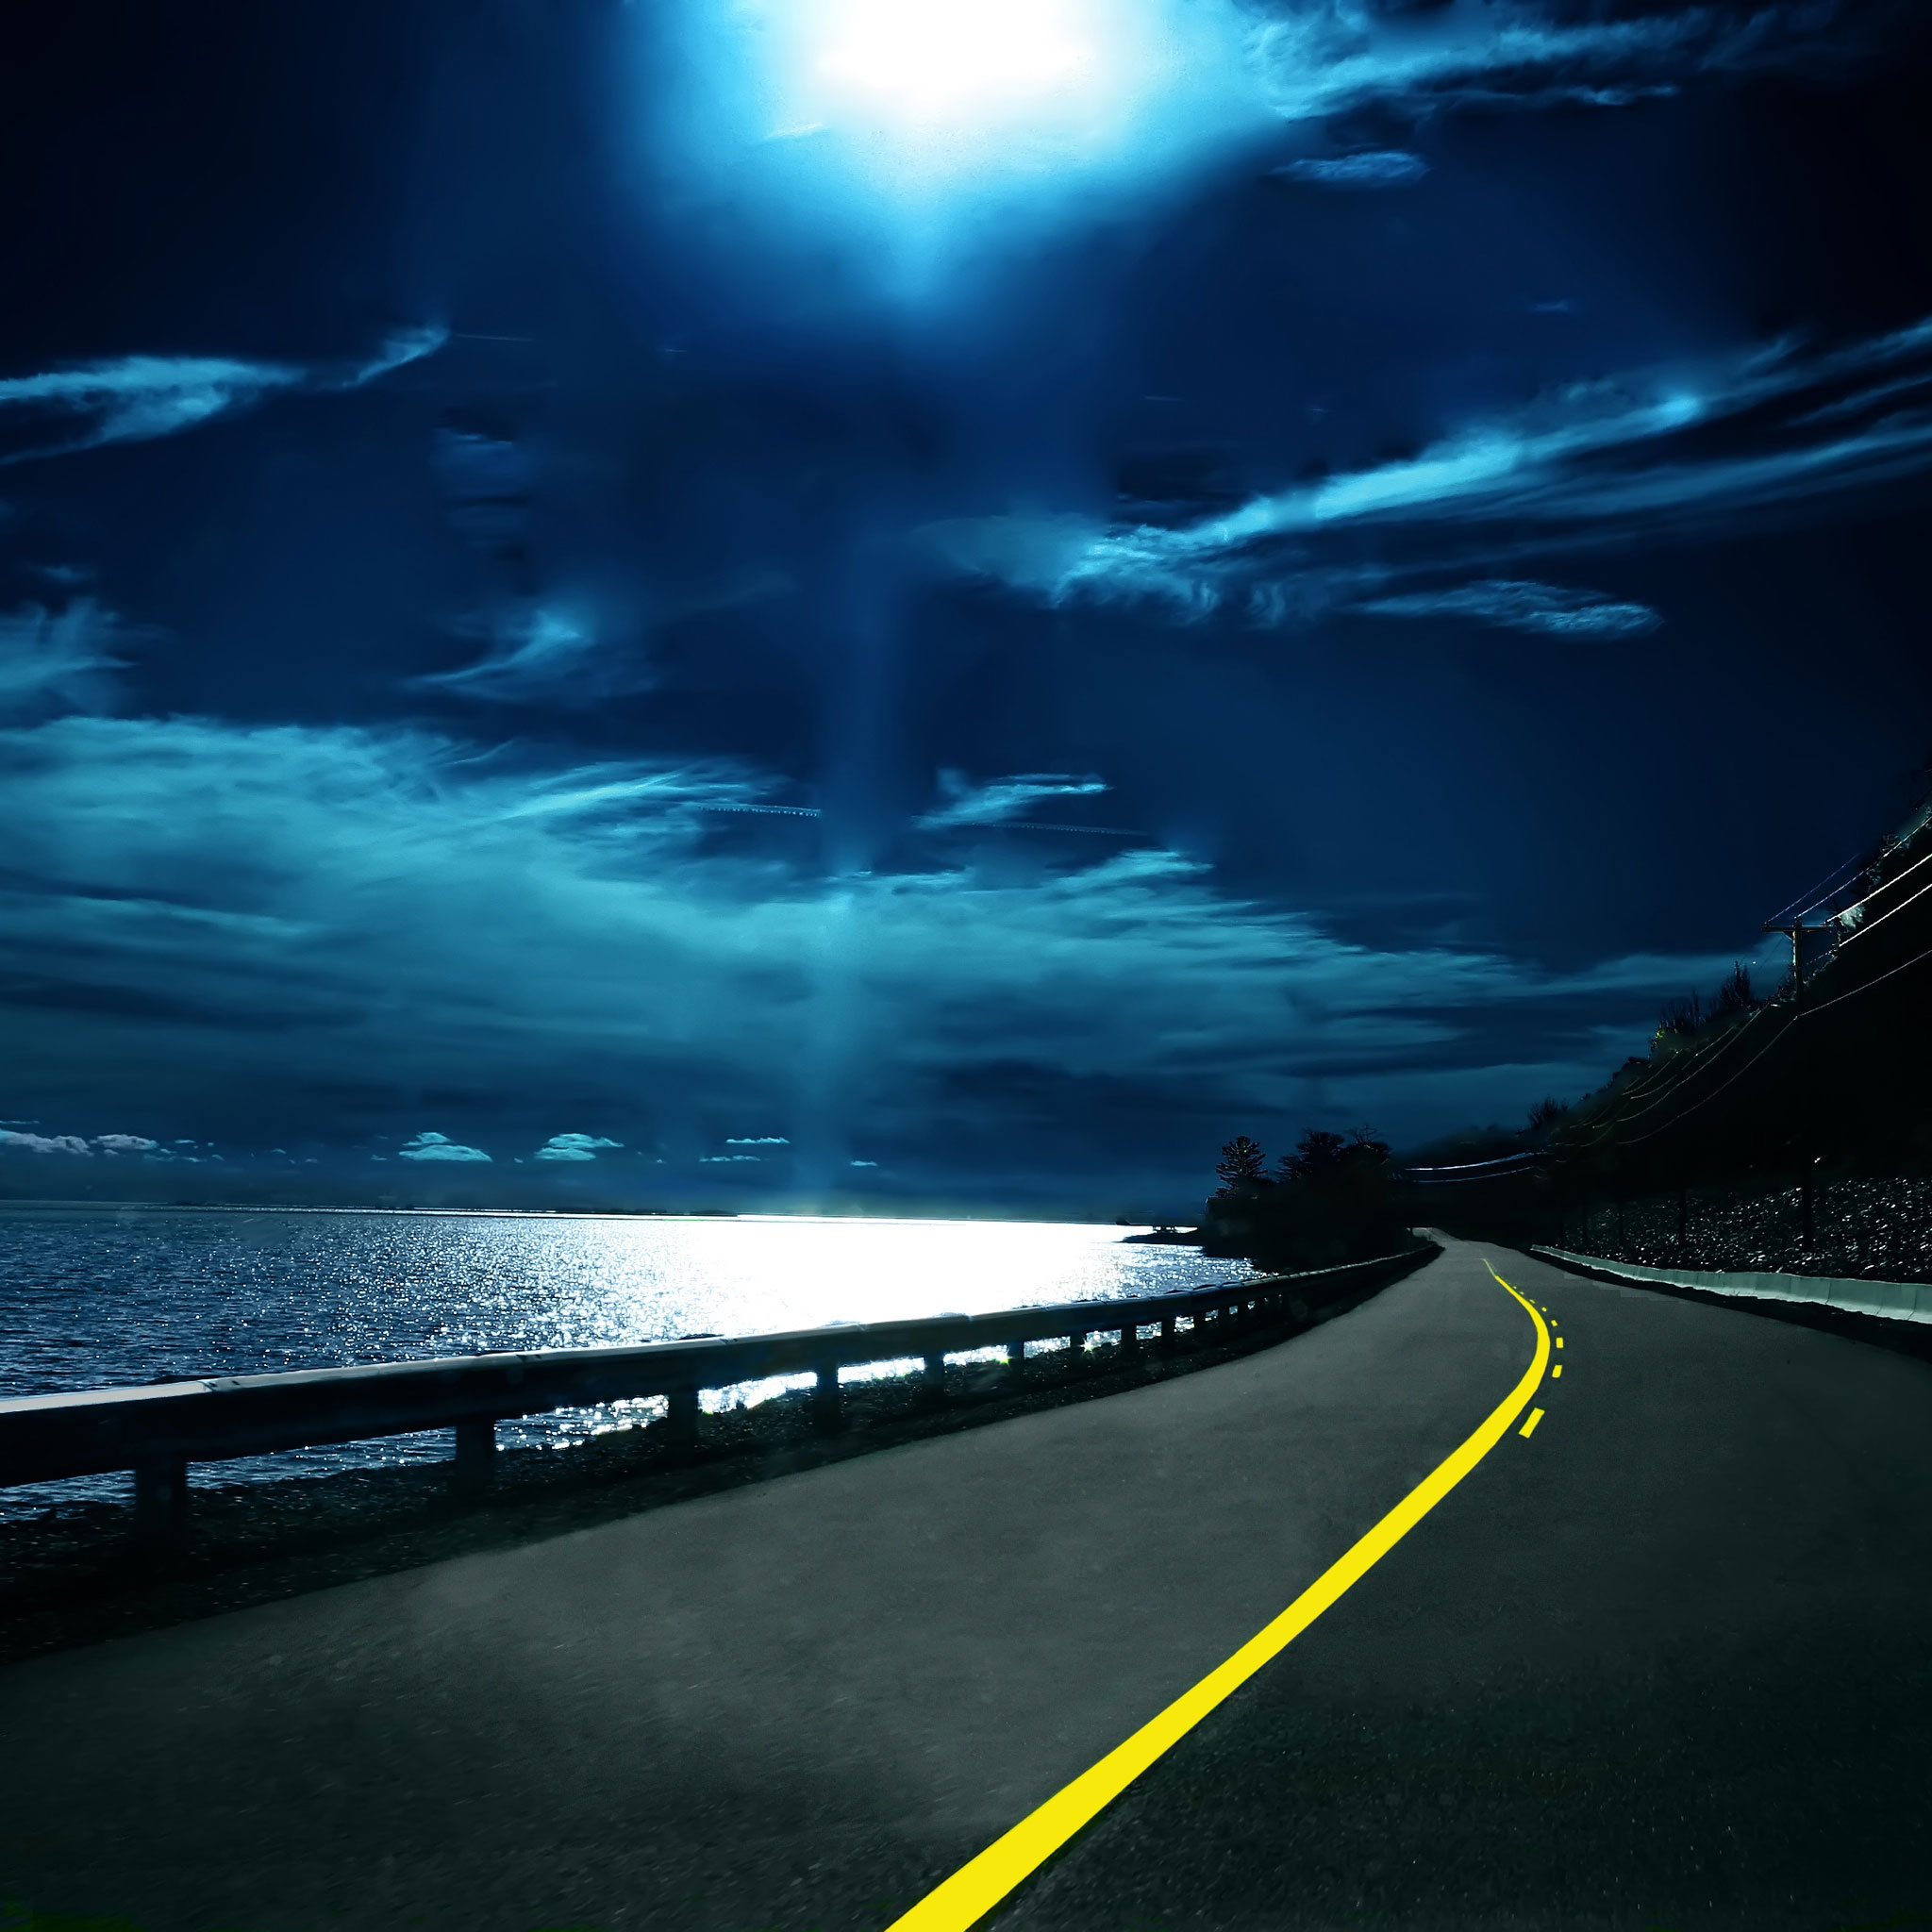 Hd wallpaper ipad - Highway Nights